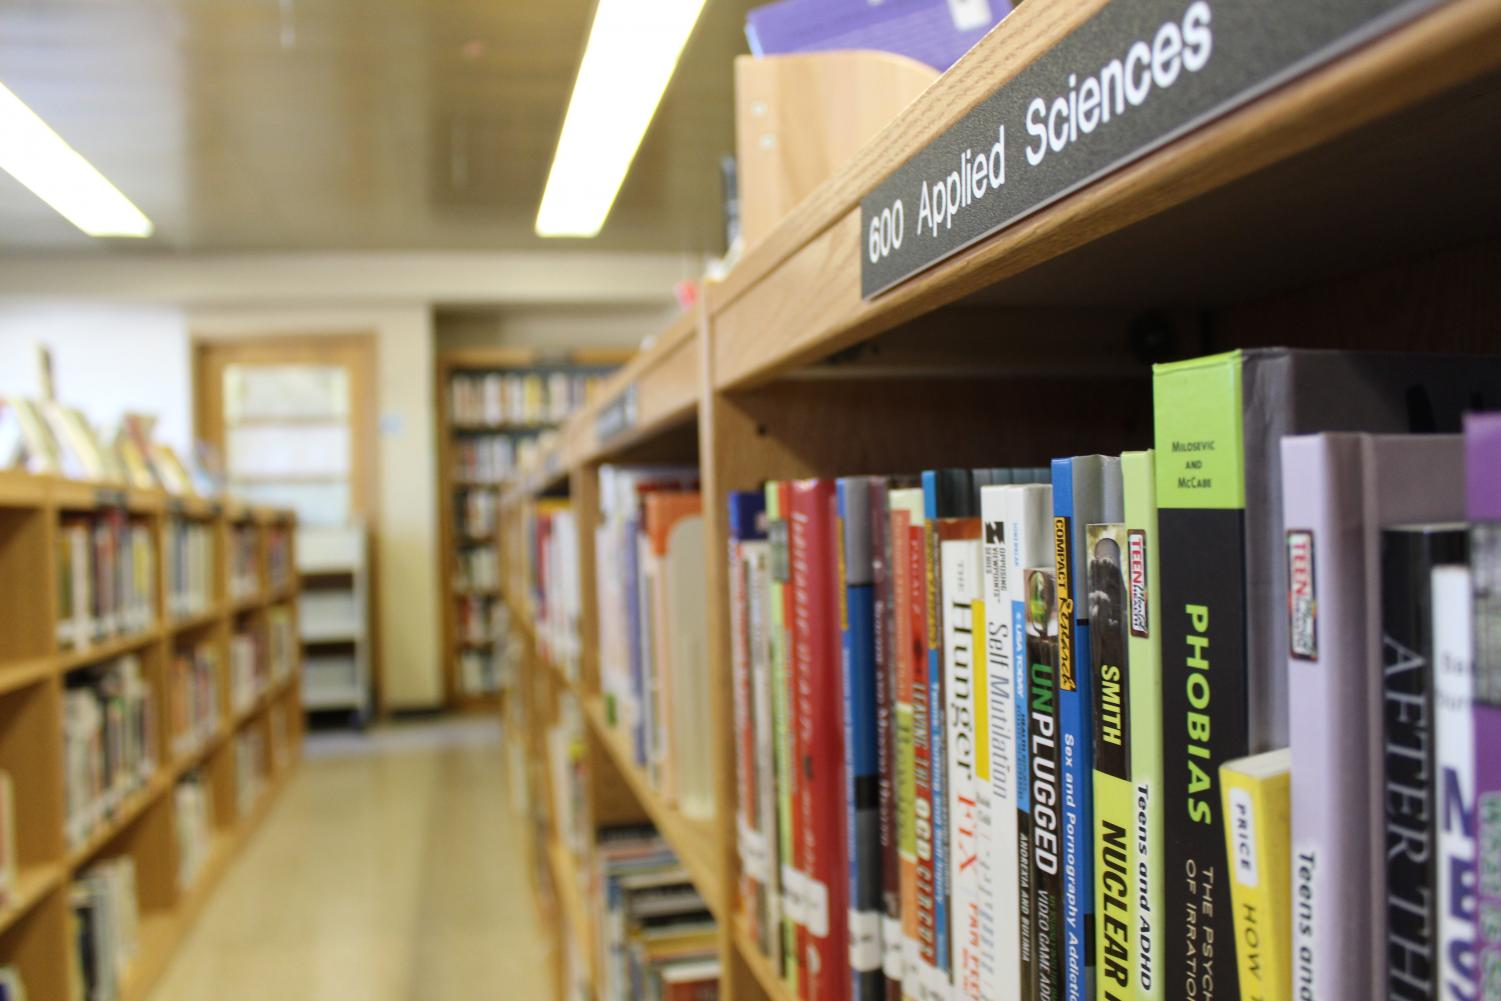 Books+of+various+genres+are+offered+to+students+to+borrow+and+learn+from.+The+wide+range+of+genres+range+from+Fiction+and+Romance+to+Applied+Sciences+and+American+History.